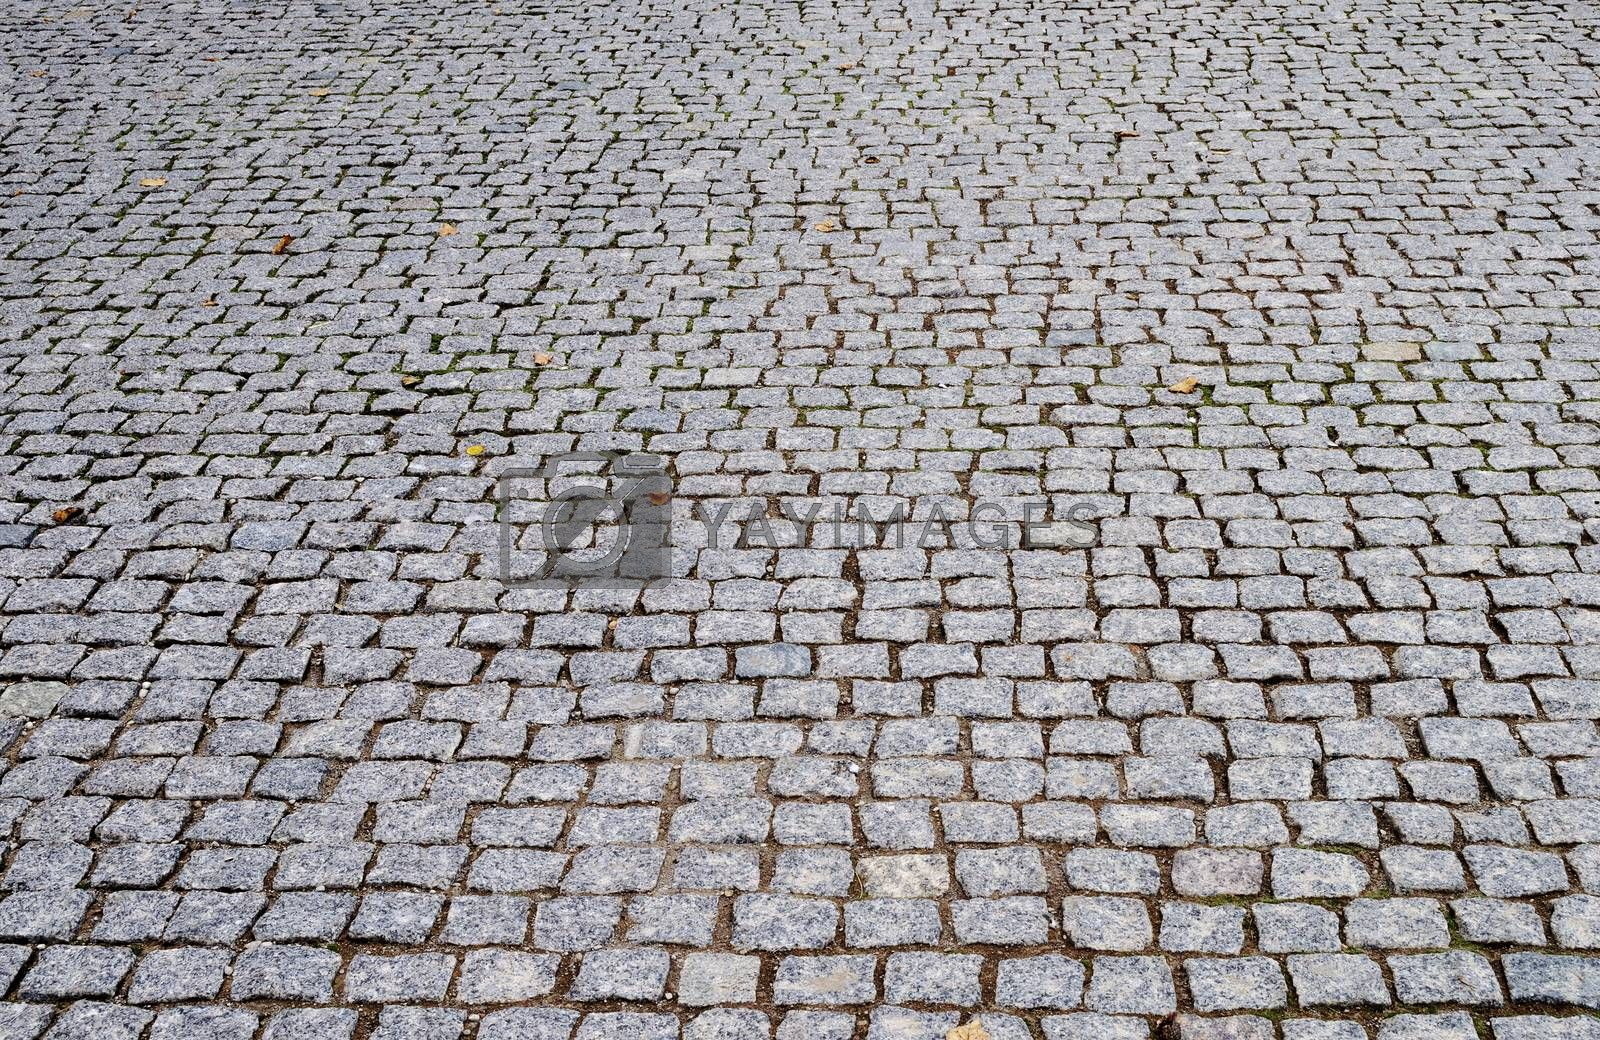 Paving blocks of gray stone with fallen leaves